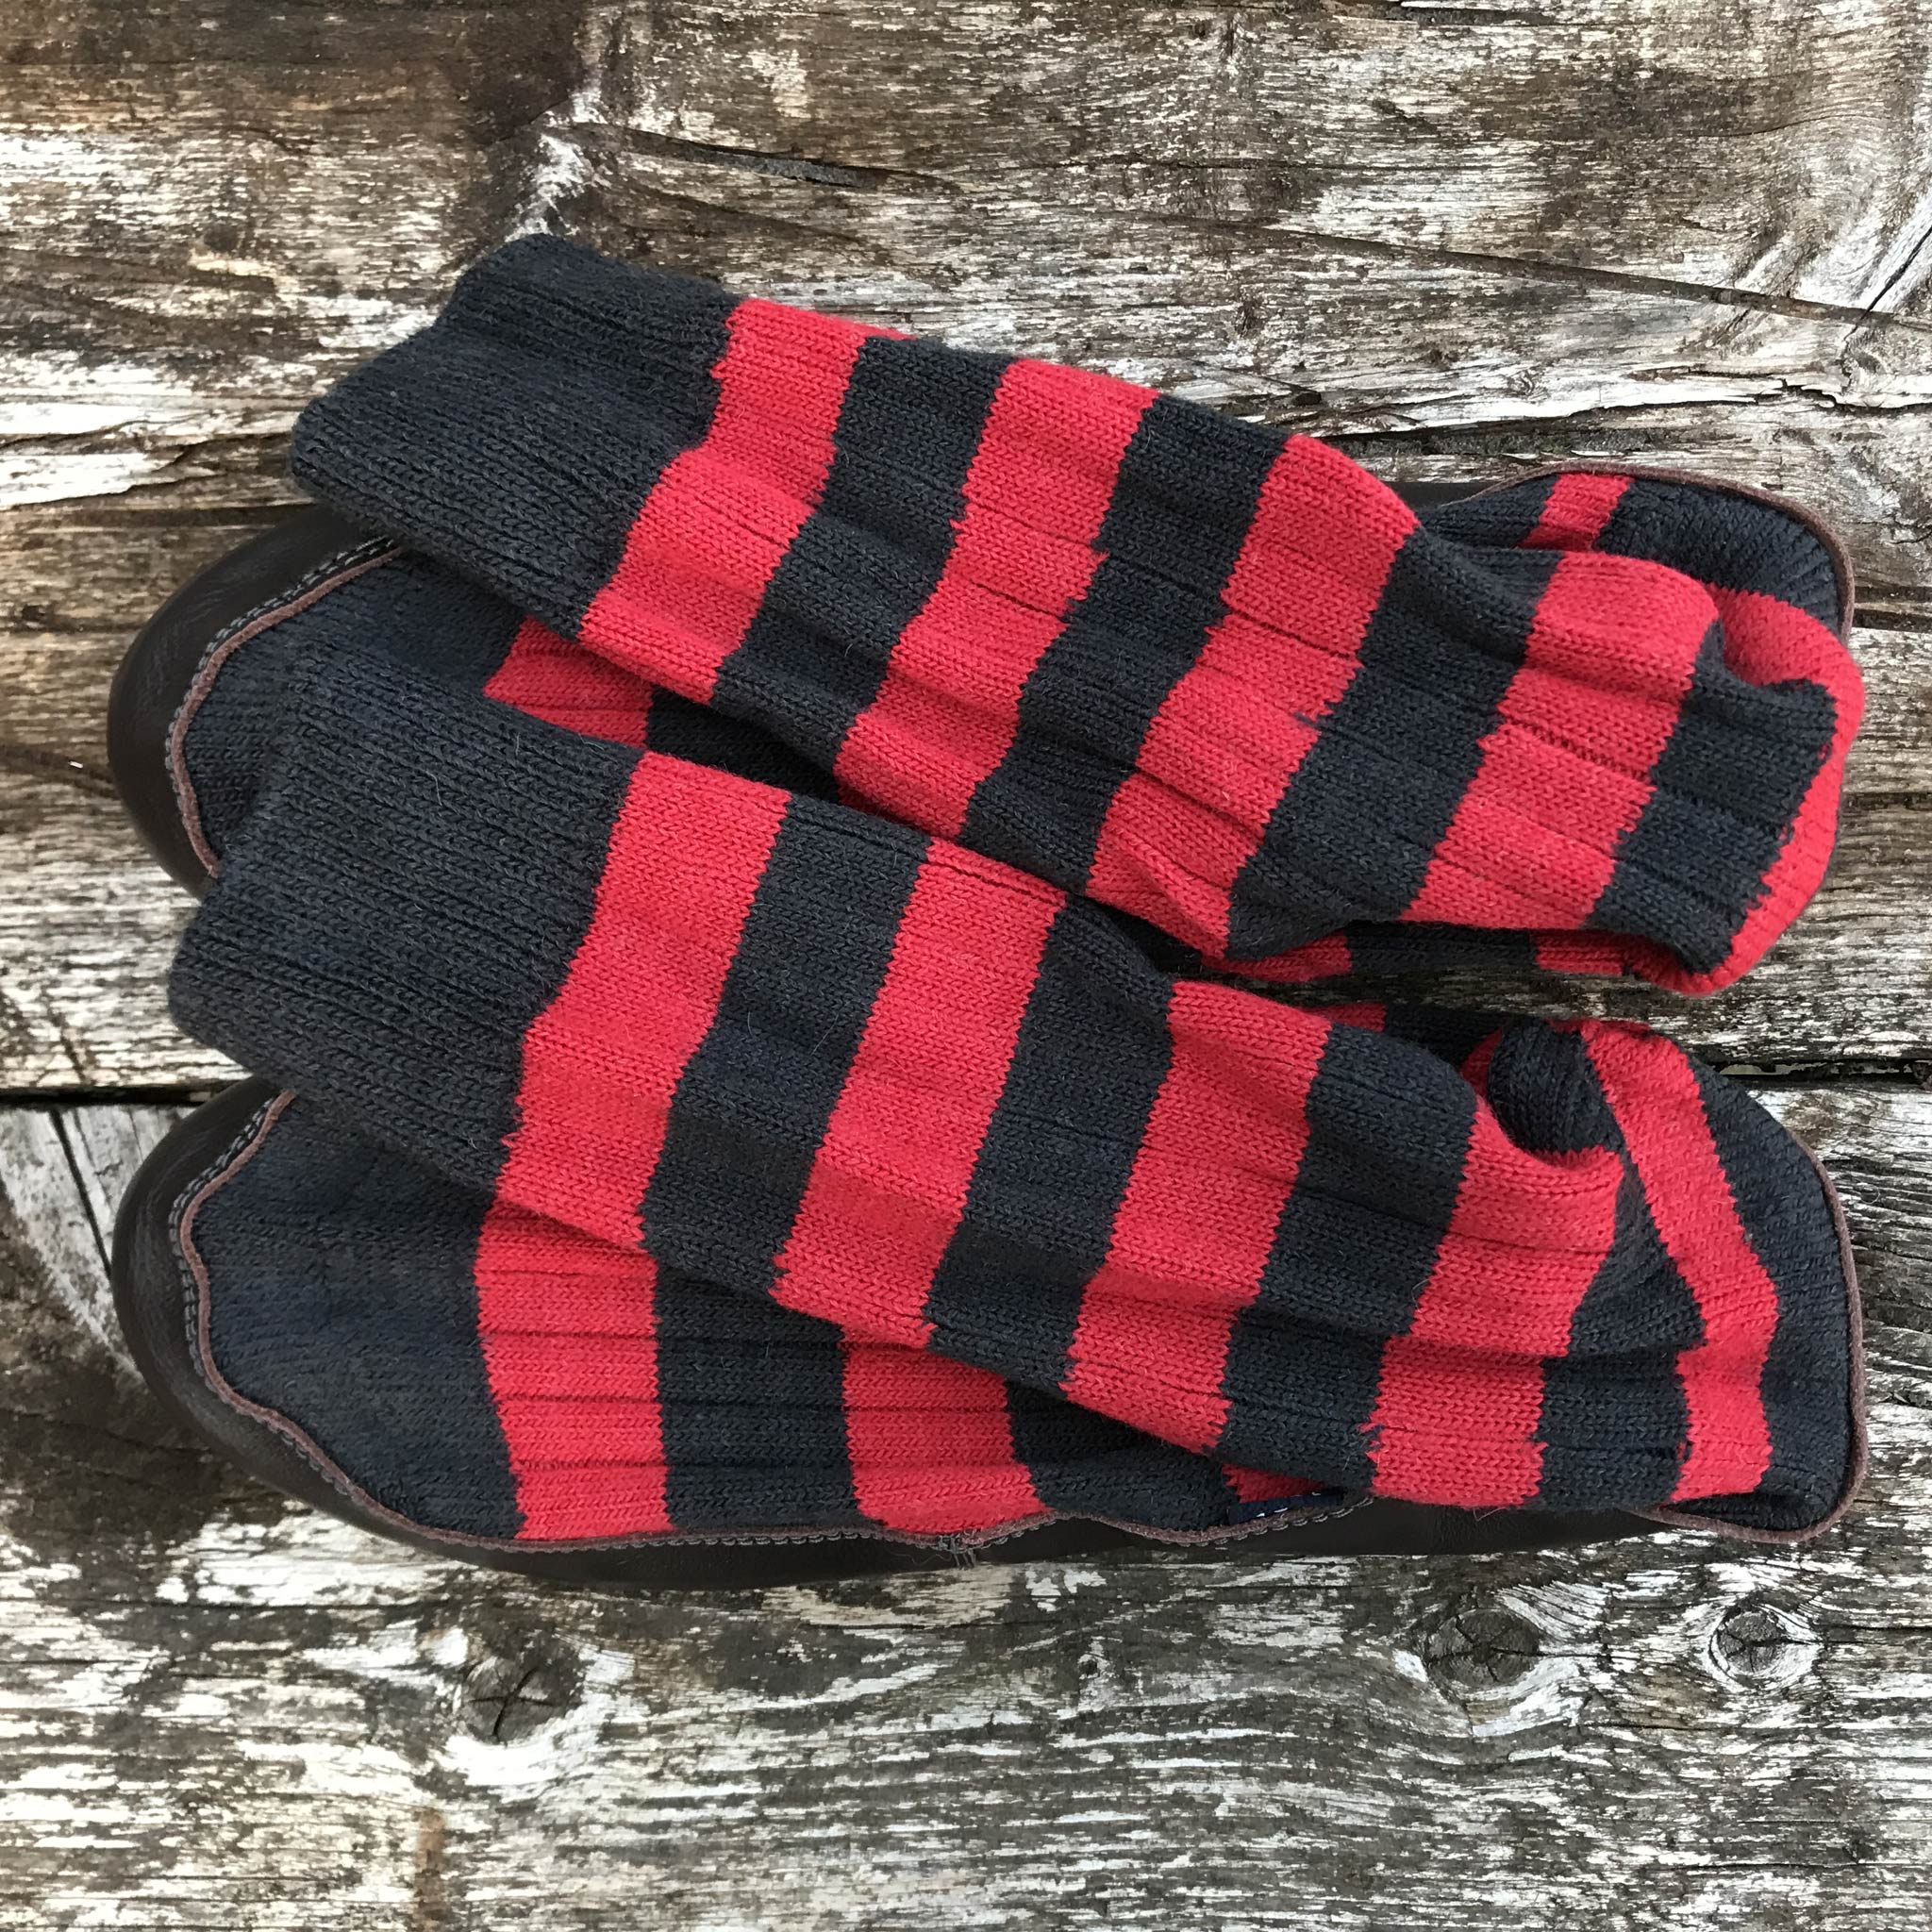 Slipper Sock black and red stripe - overhead view